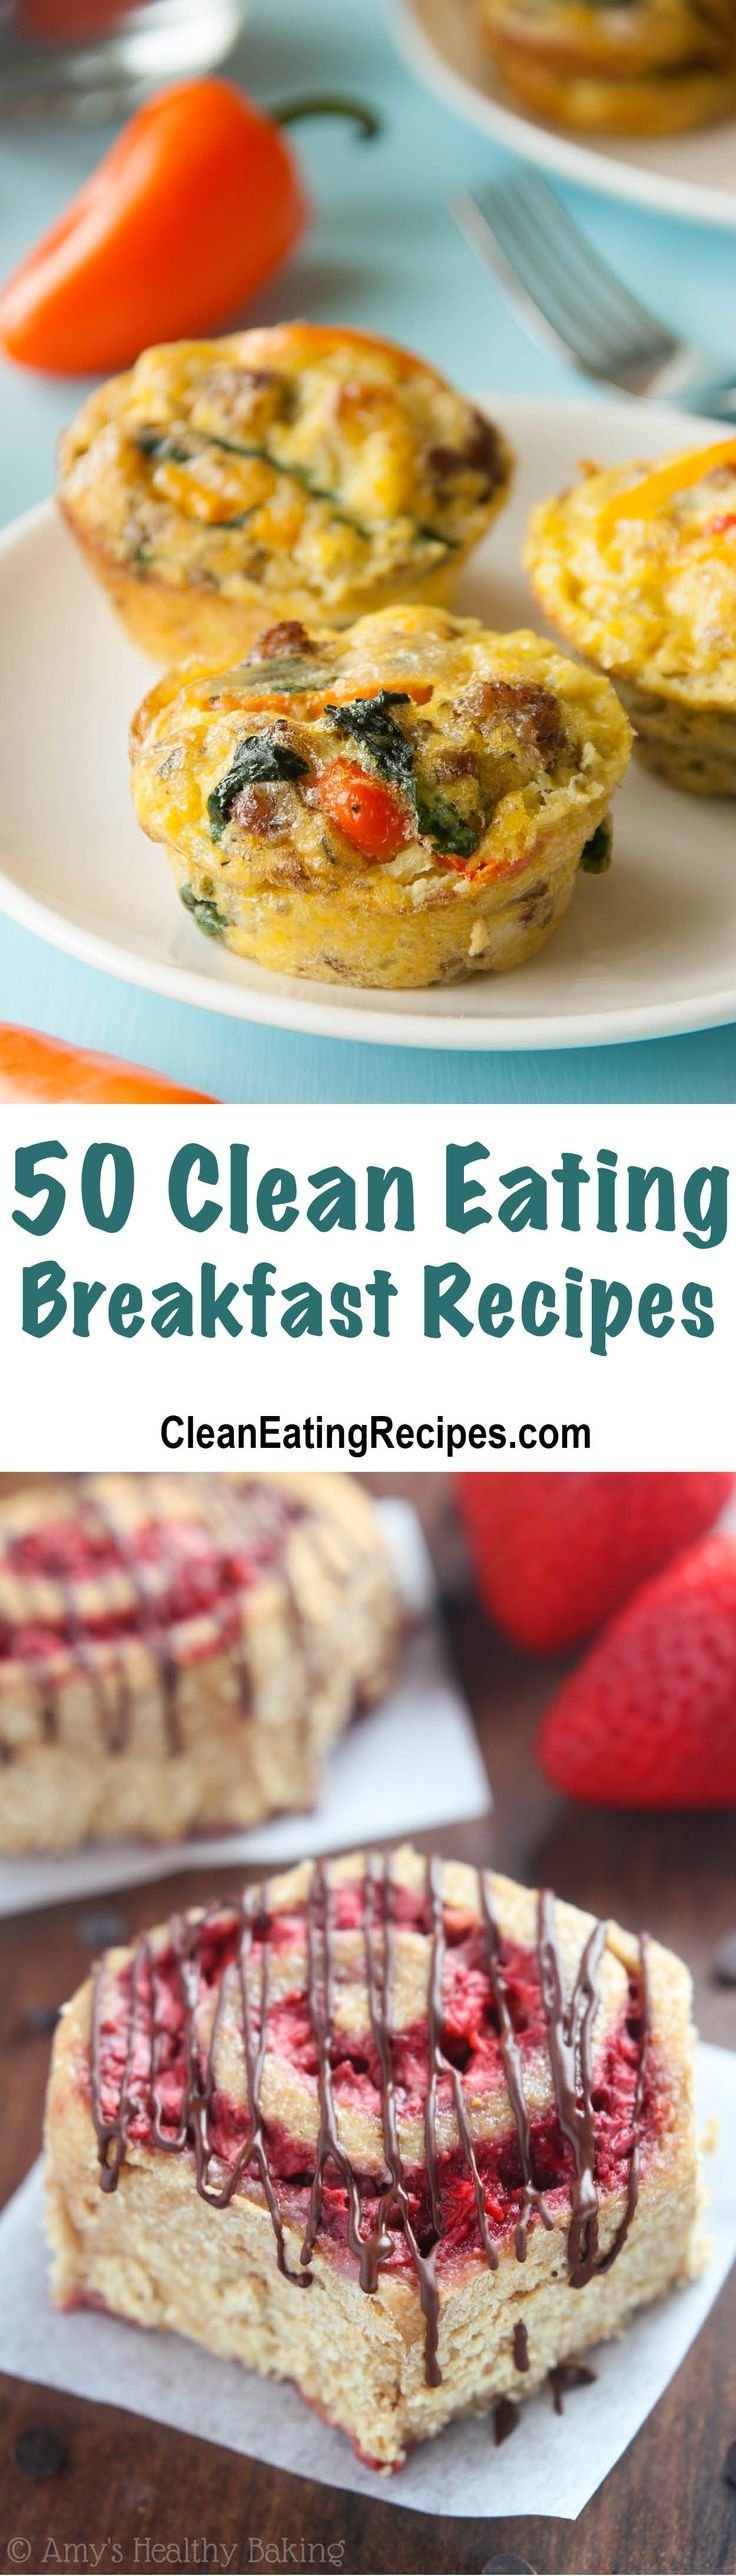 12 clean eating breakfast ideas from other bloggers gesunde rezepte fr hst ck und gesund. Black Bedroom Furniture Sets. Home Design Ideas